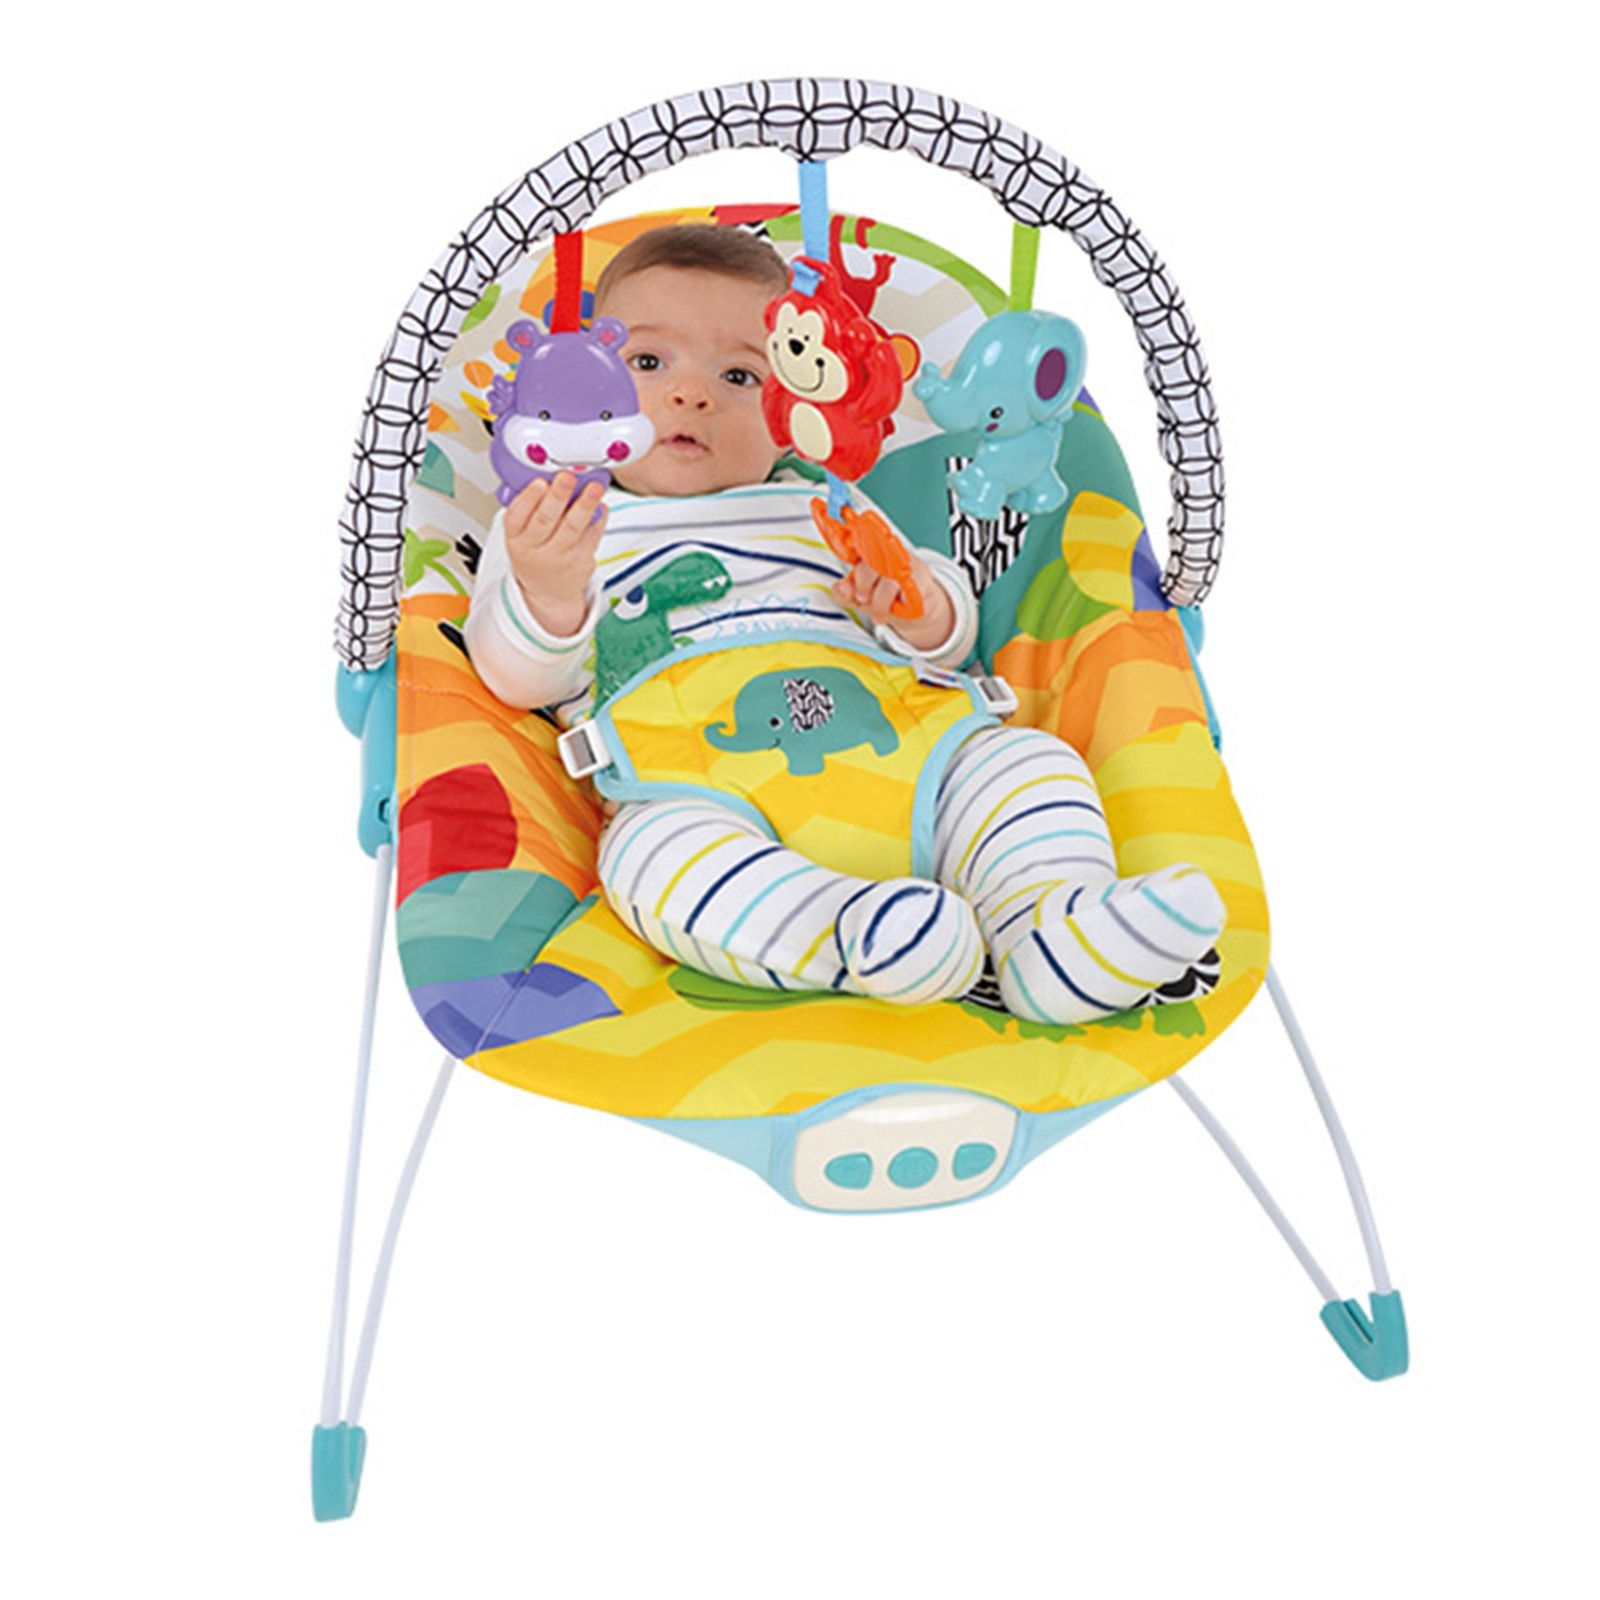 Ebebek Bondigo BL710 Baby Bouncer Chair - Vibrating And Musical